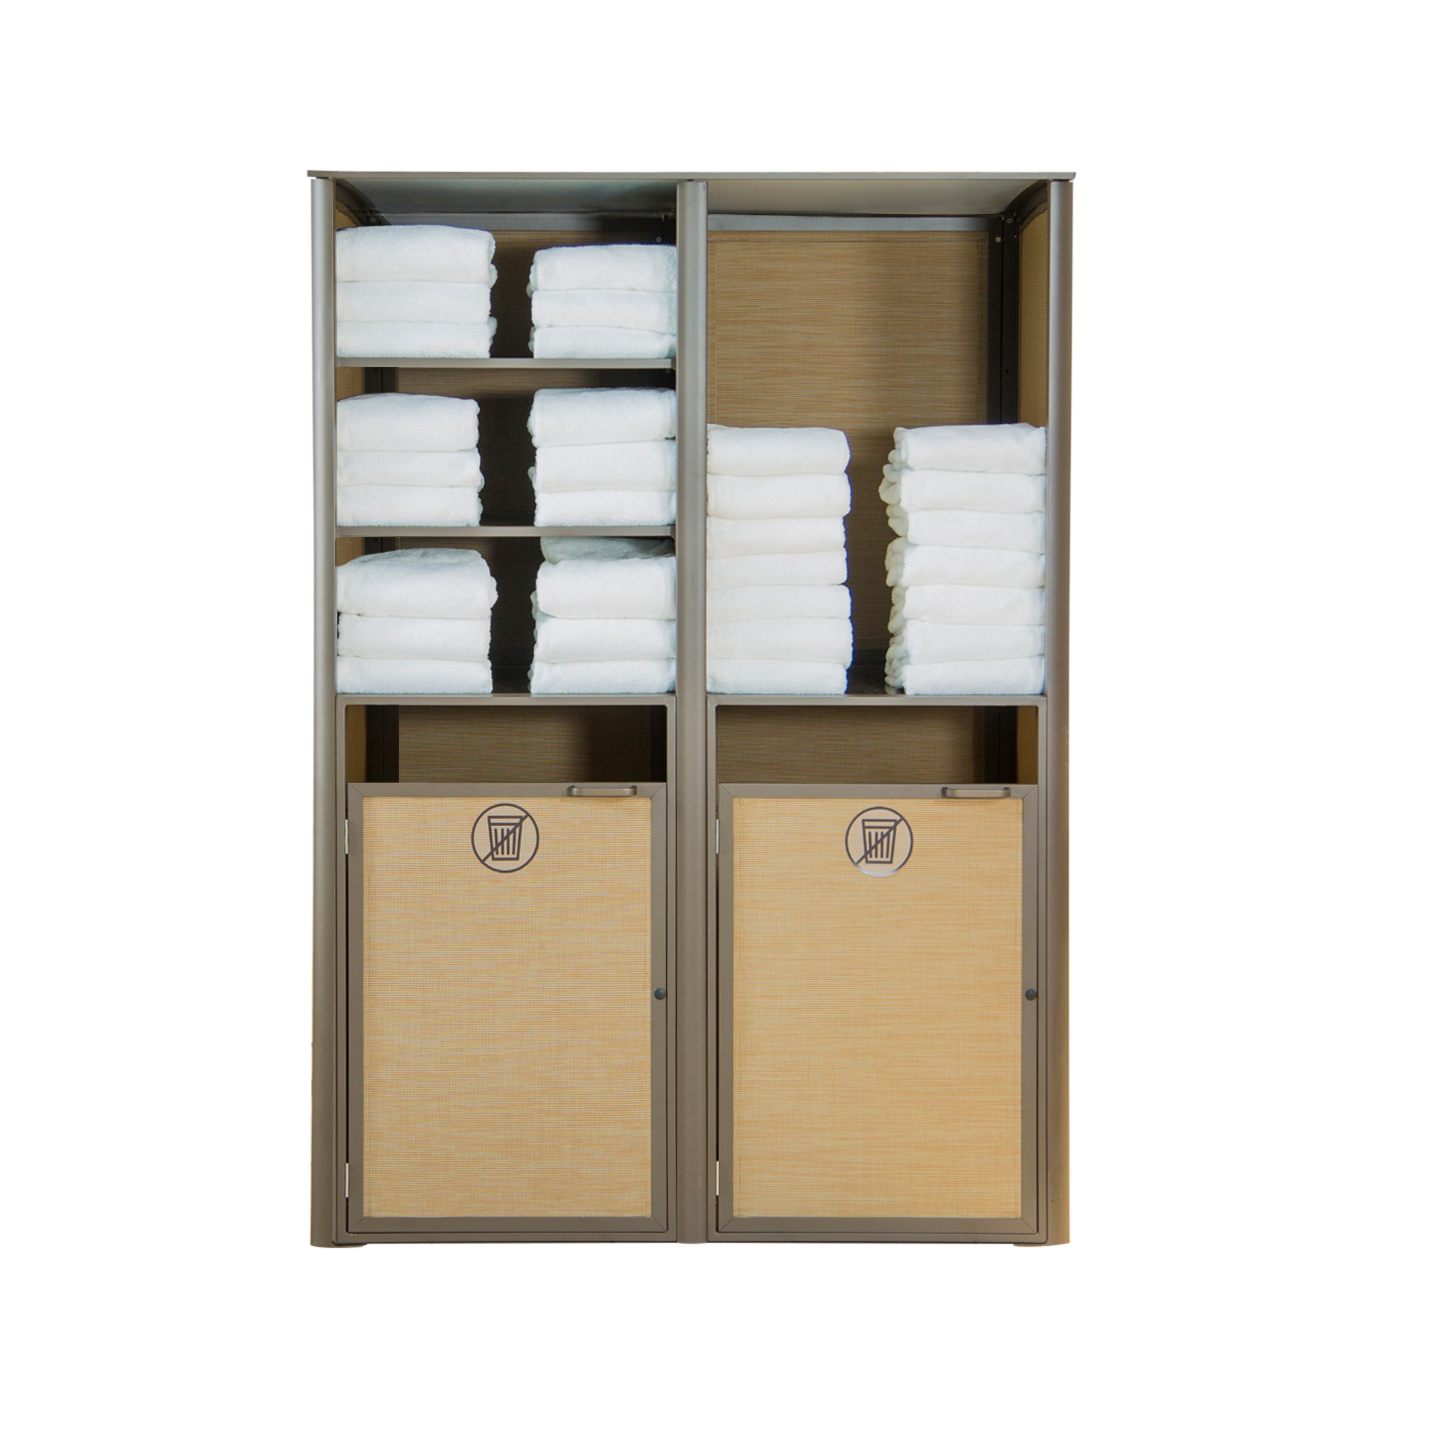 Grosfillex US173288 laundry housekeeping cabinet